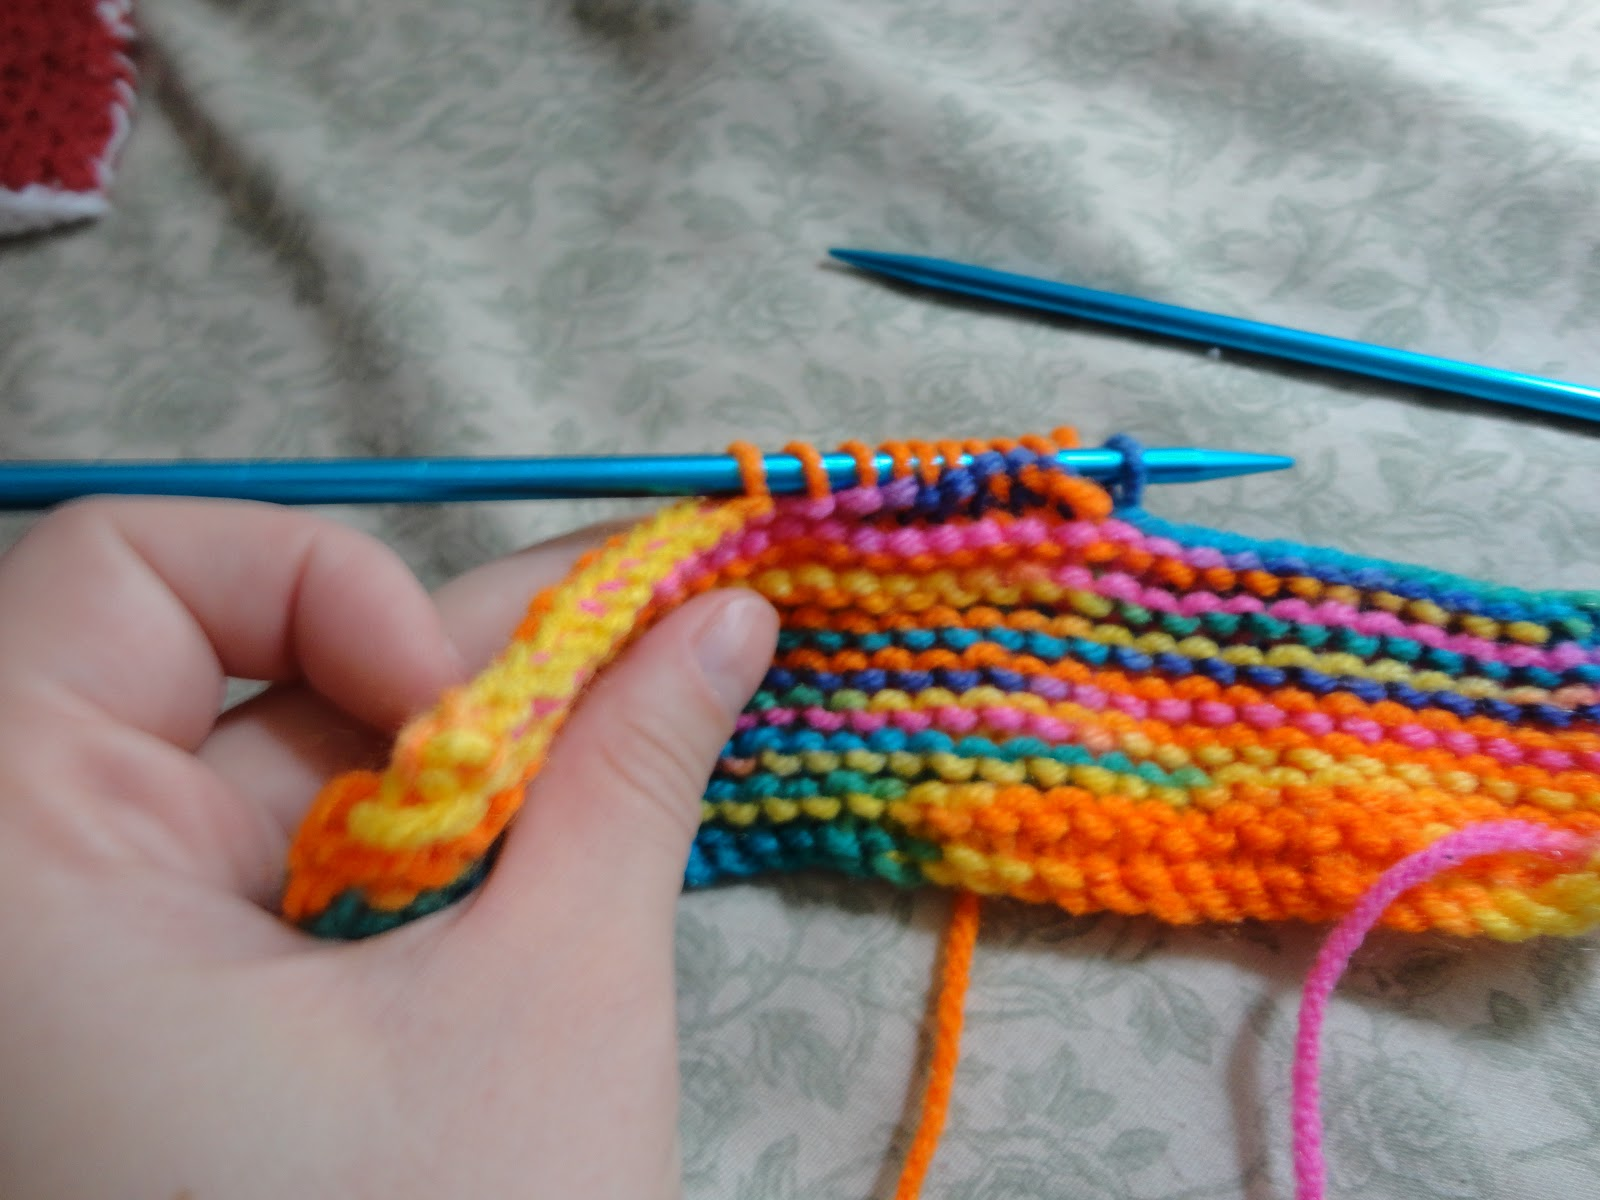 Binding Off Stitches In Knitting : Knitting, Sci-fi and other stuff...: Chaussons Mignons: A Photo Tutorial Asse...